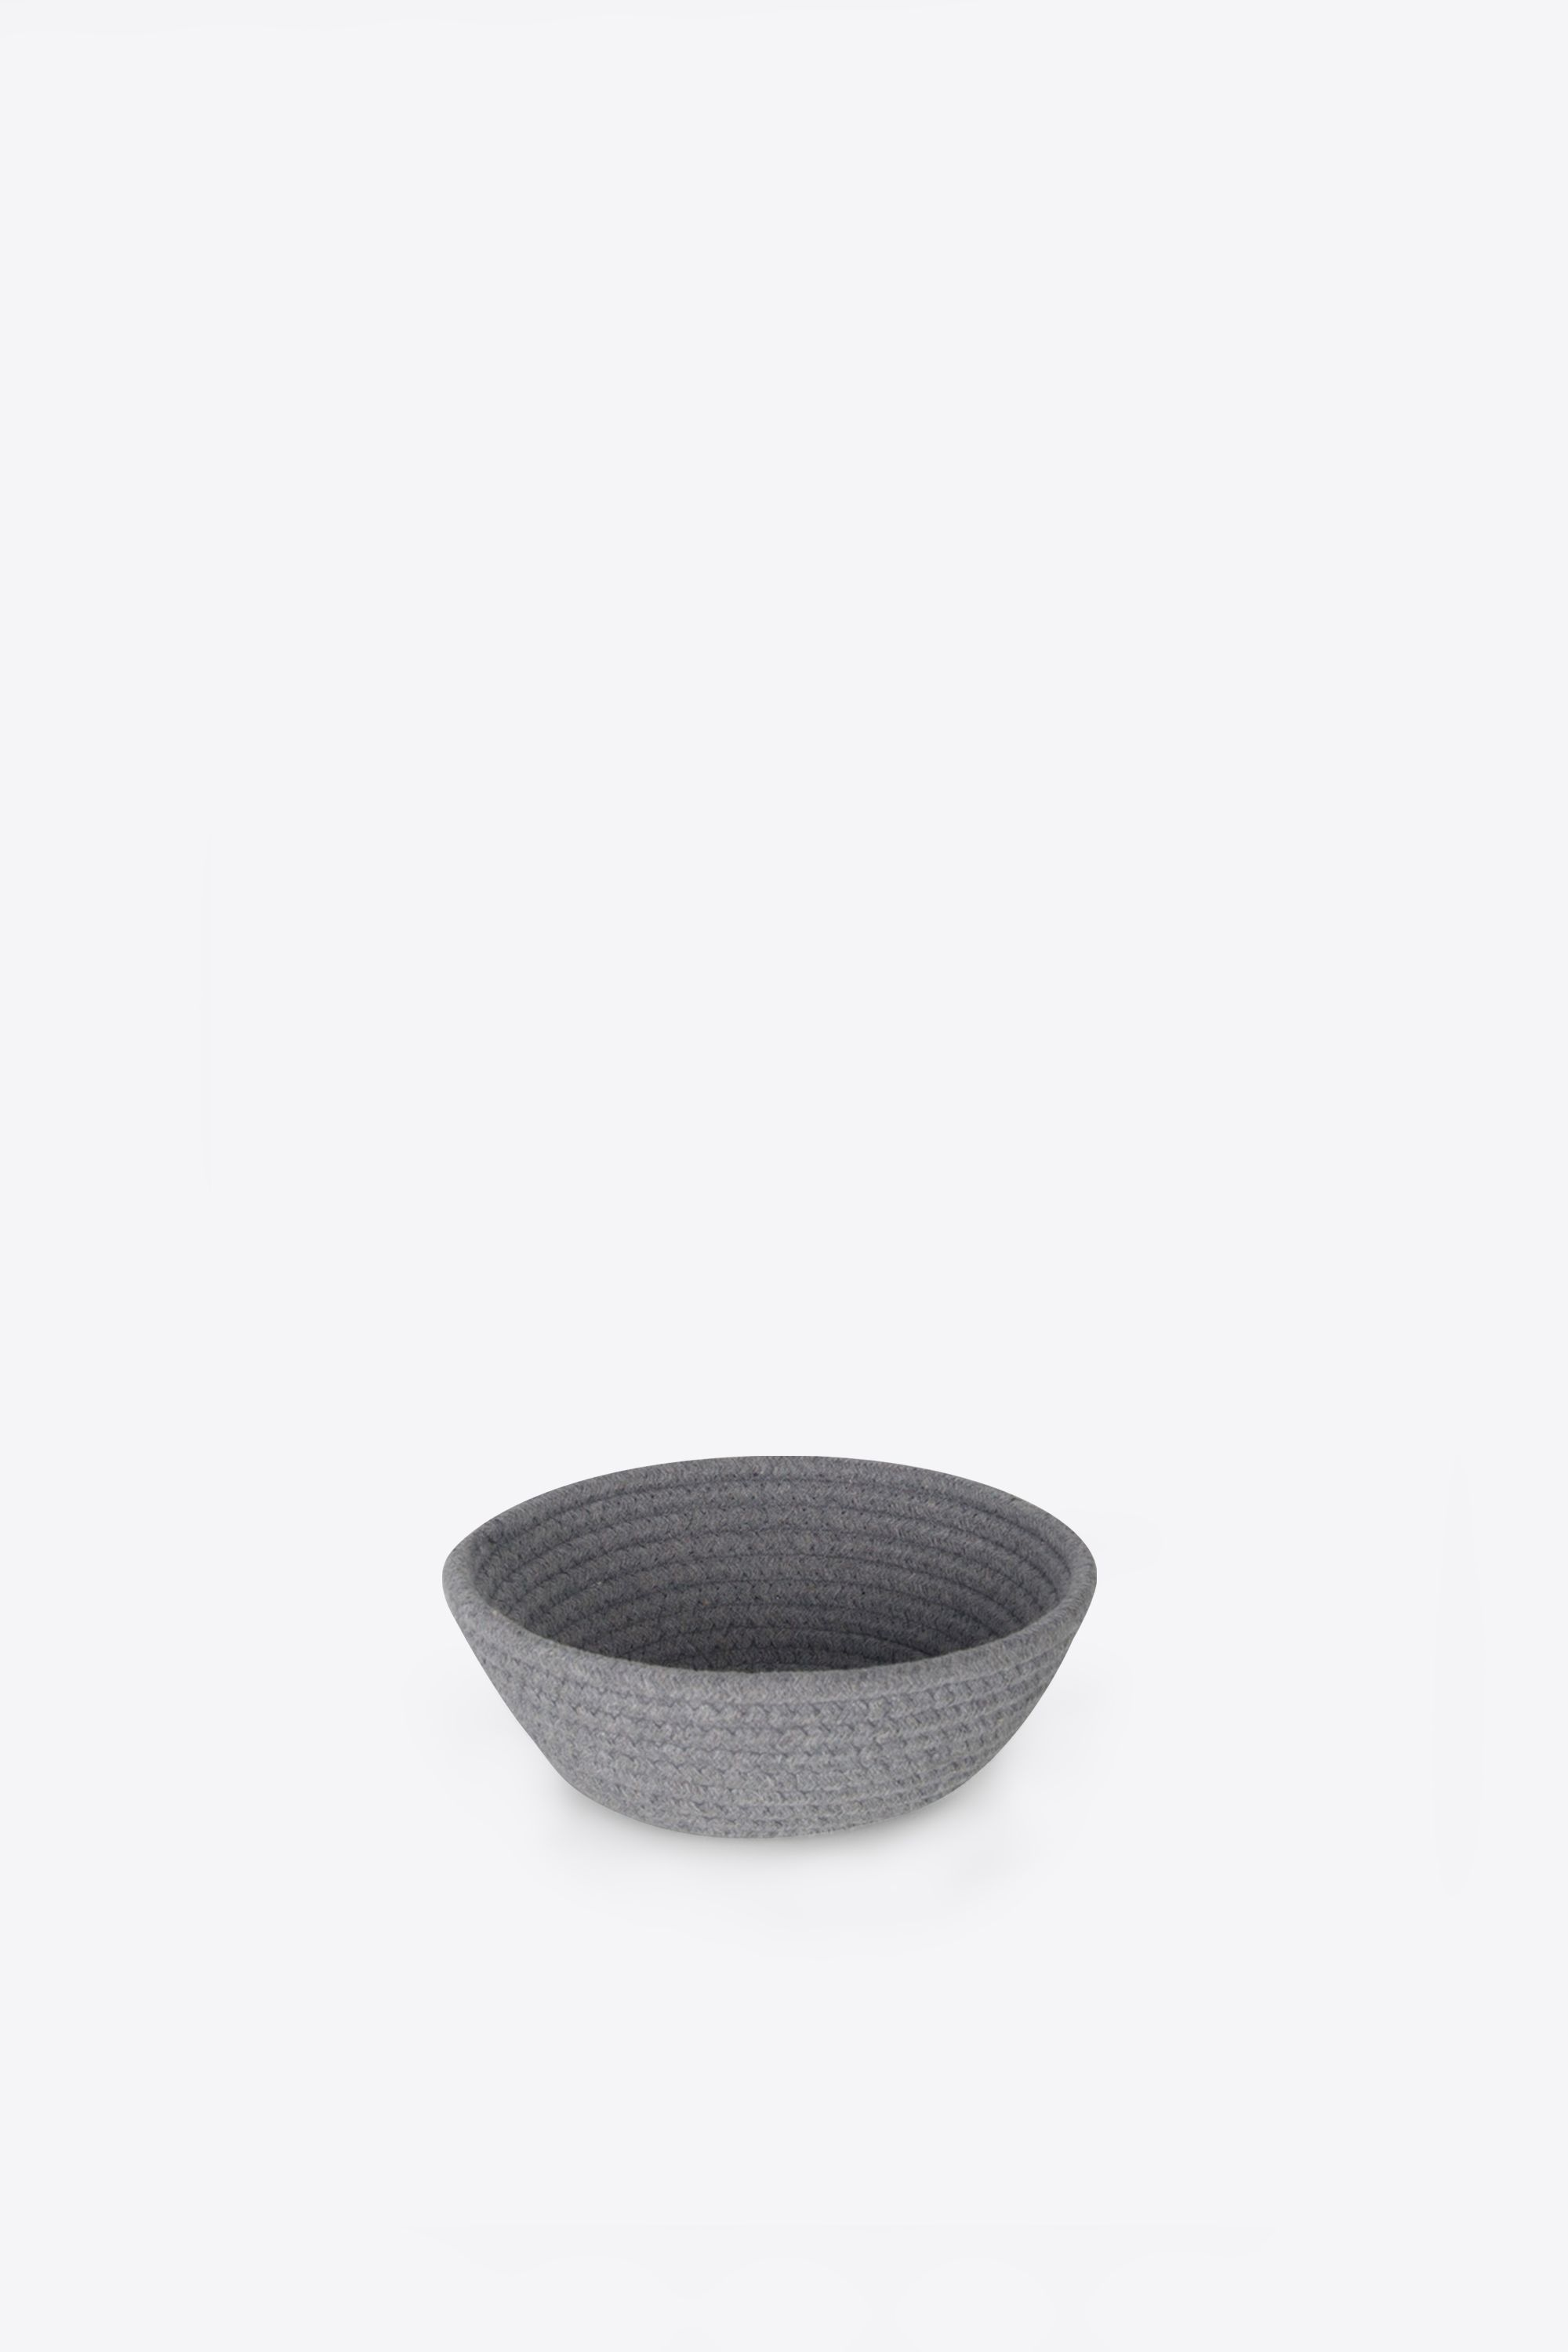 Rope Bowl 1017 Gray 4